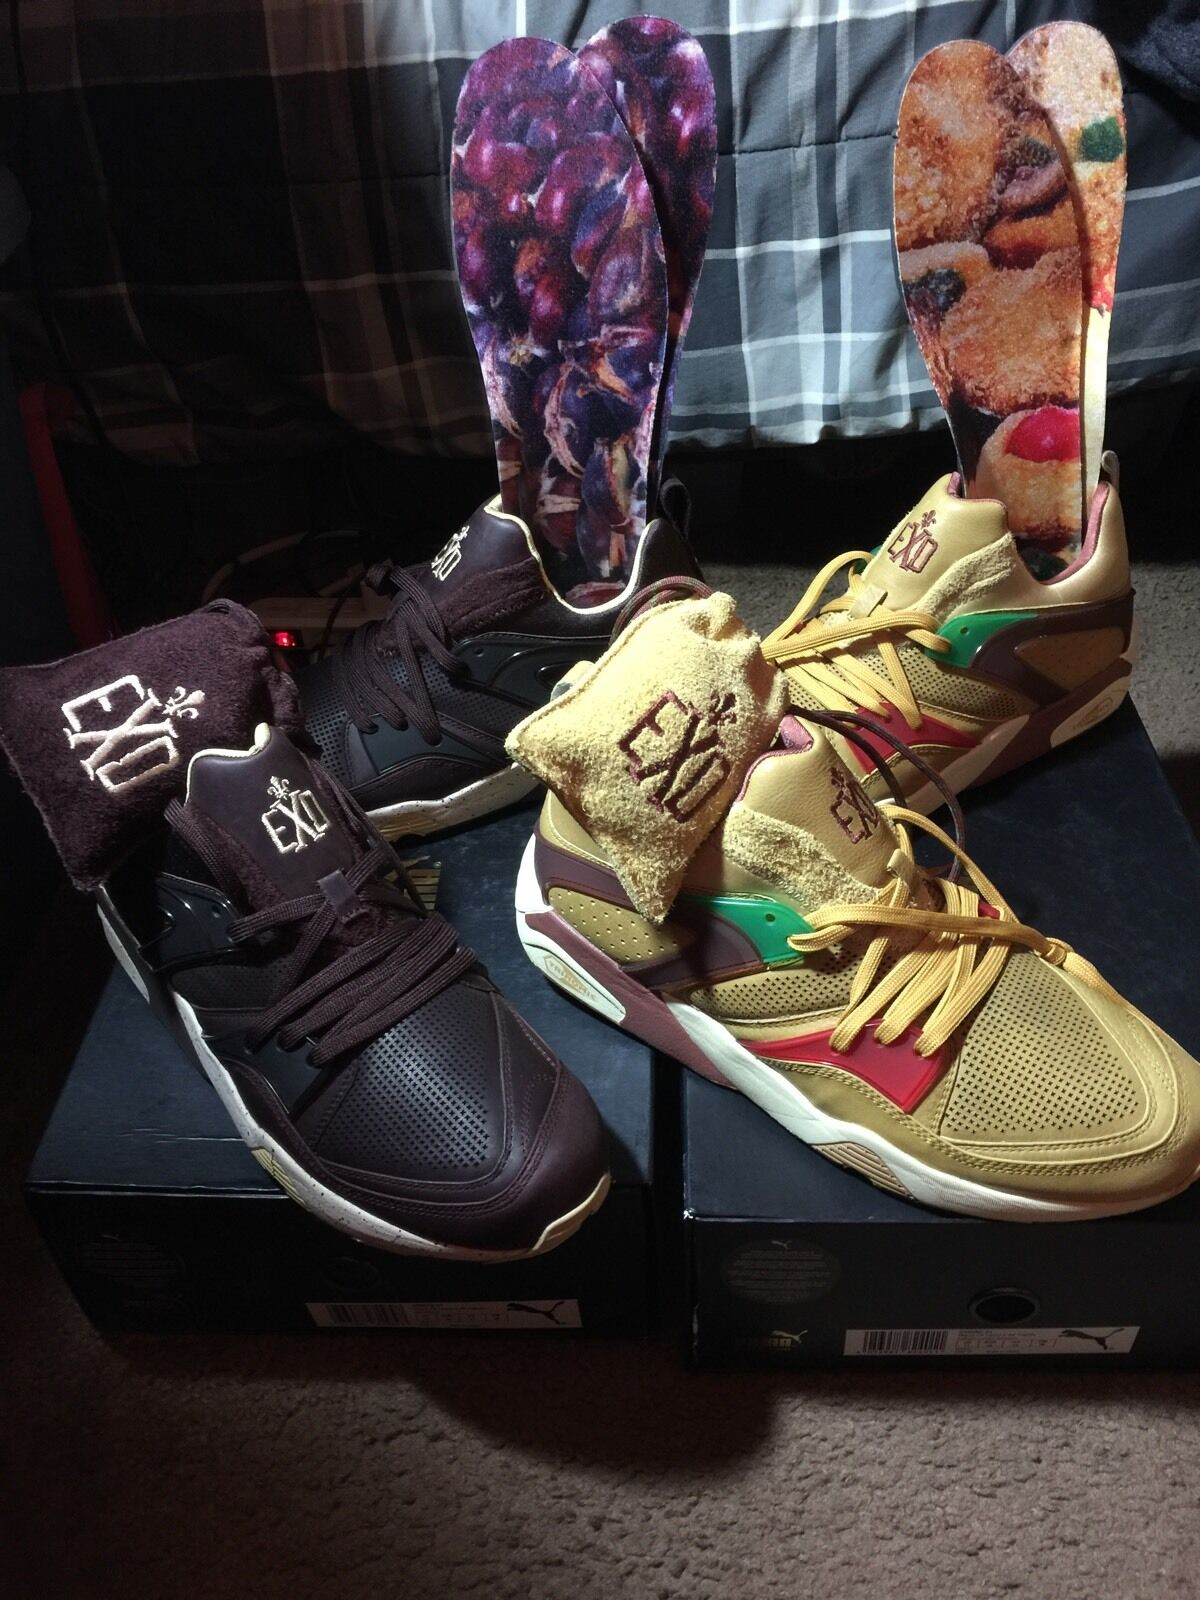 Puma Blaze Of Glory X Limit editions EXD Chestnuts Macaroons Rs-x Bape Toys